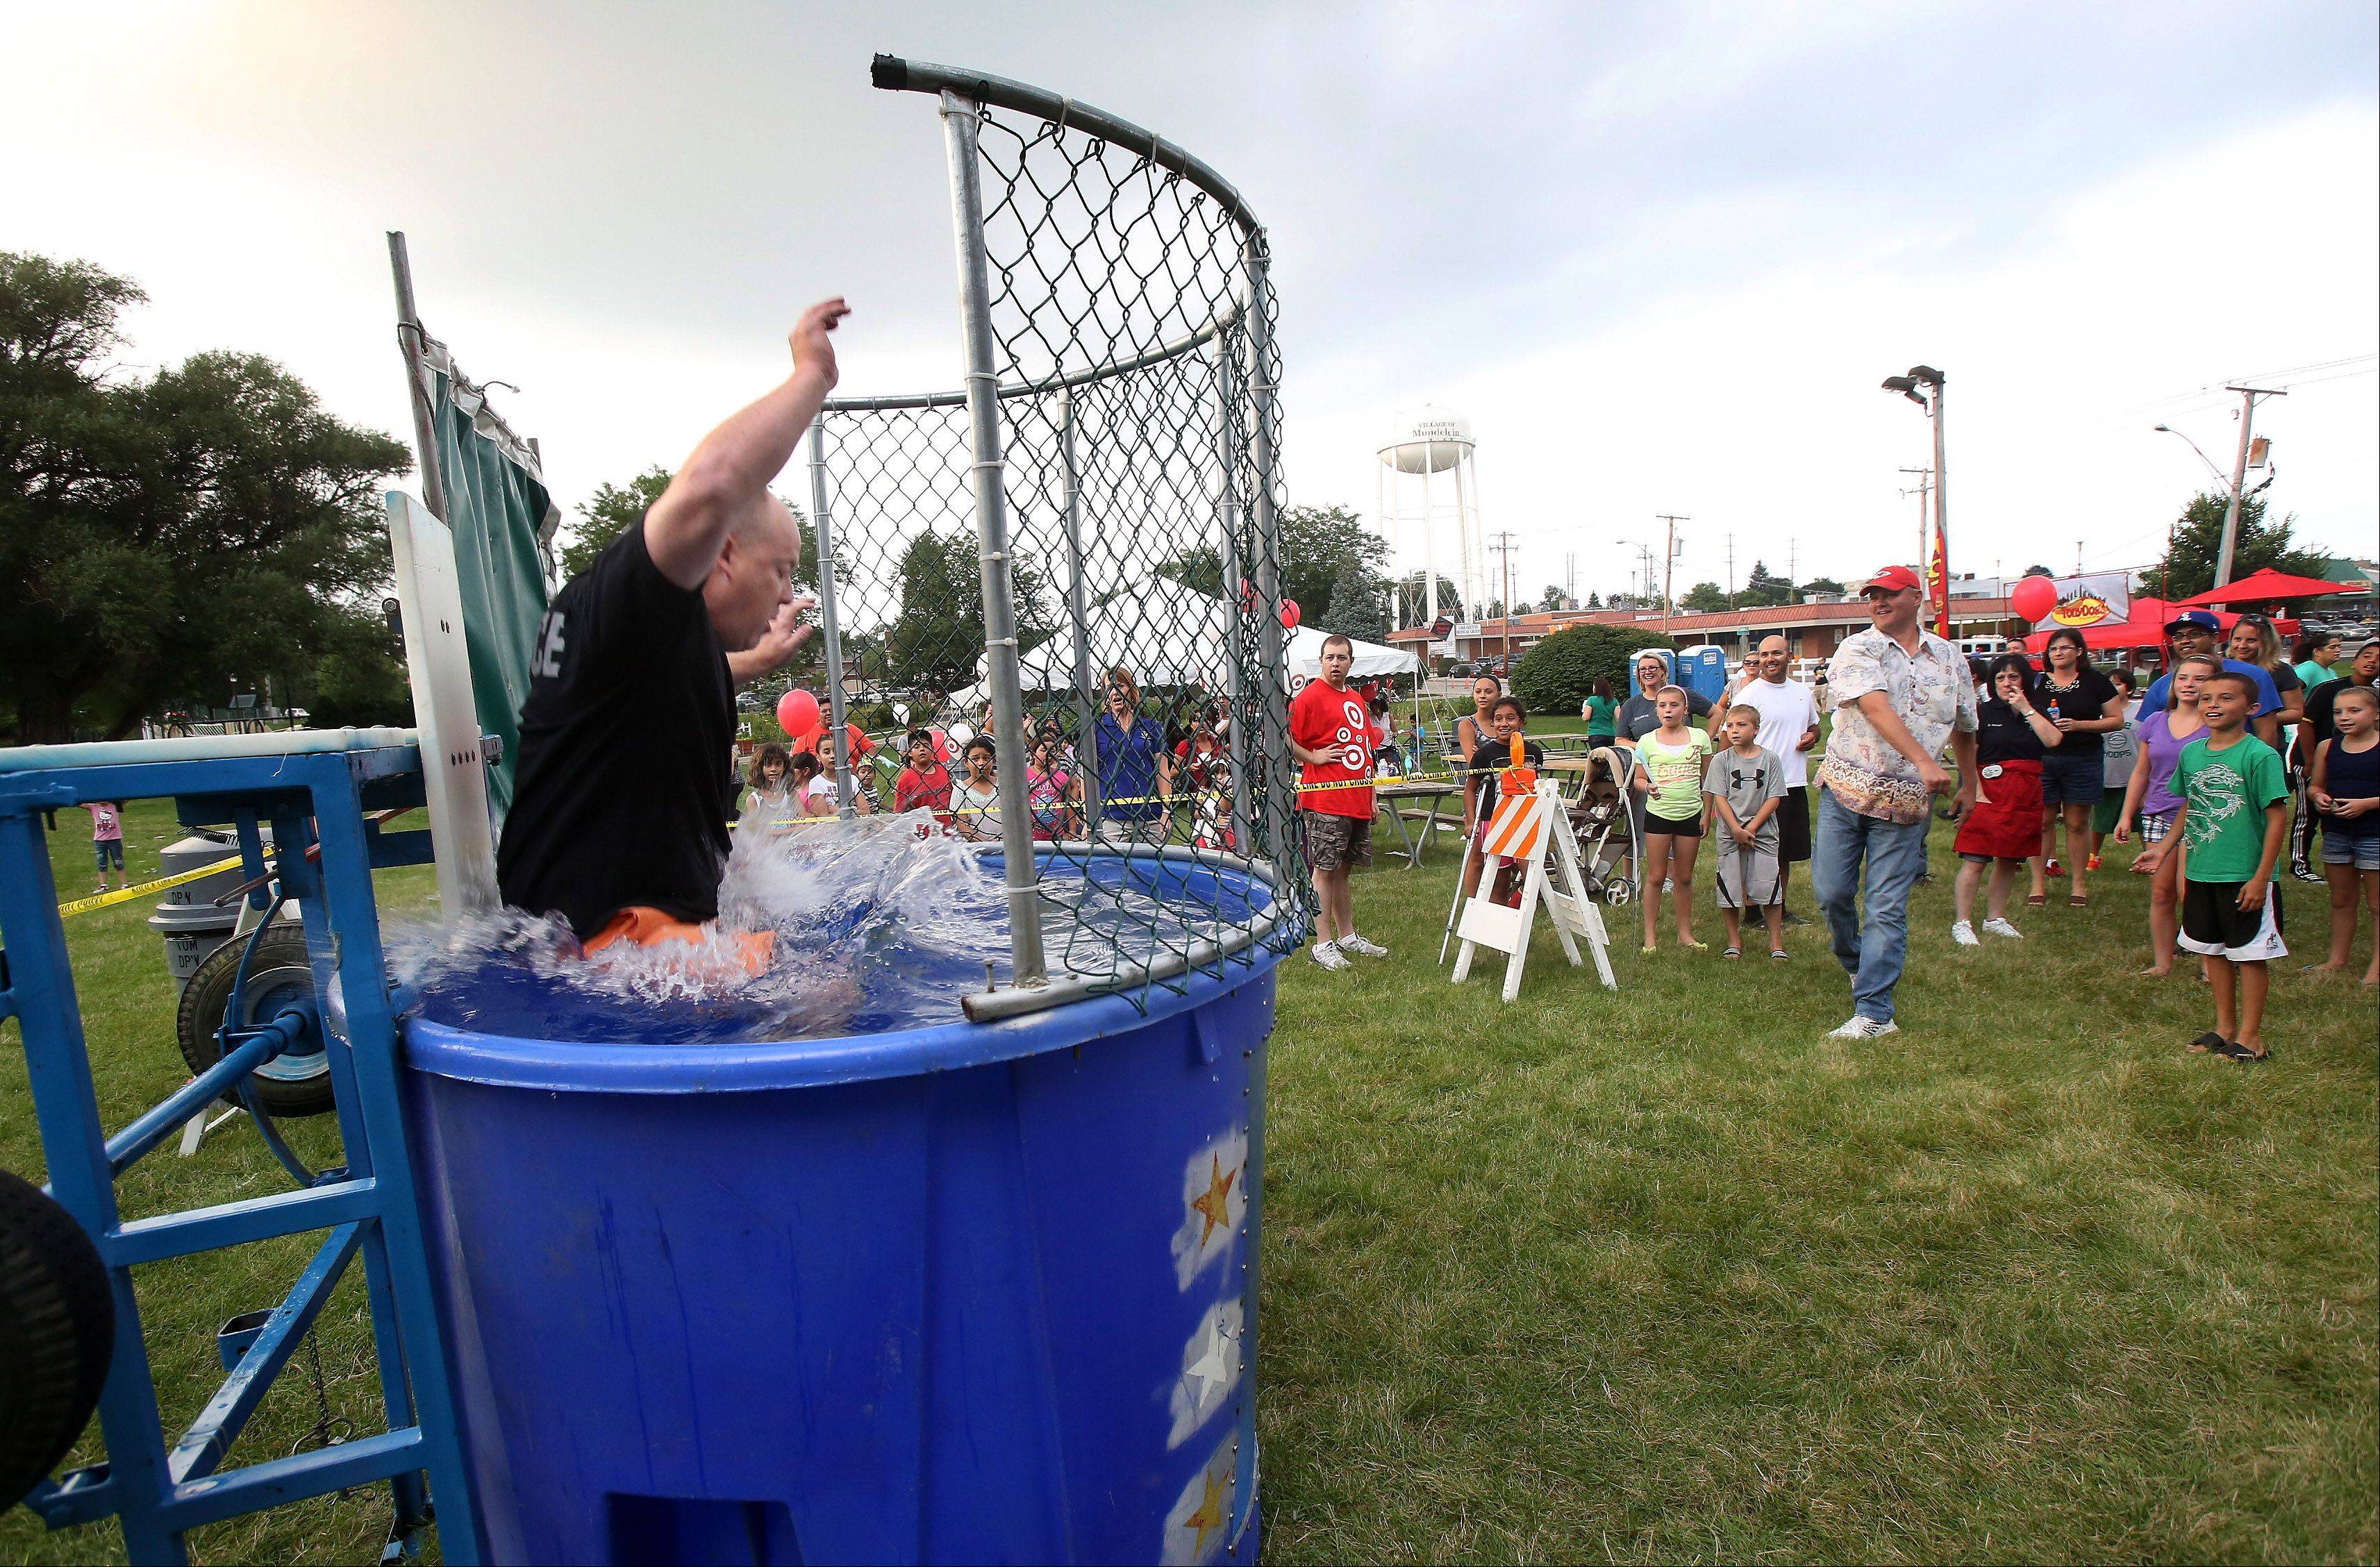 Mundelein Police Chief Eric Guenther is knocked in the water in the dunk tank during the Mundelein National Night Out Tuesday at Kracklauer Park. The event offered a dunk tank, games, food, a chance to meet police officers and more.